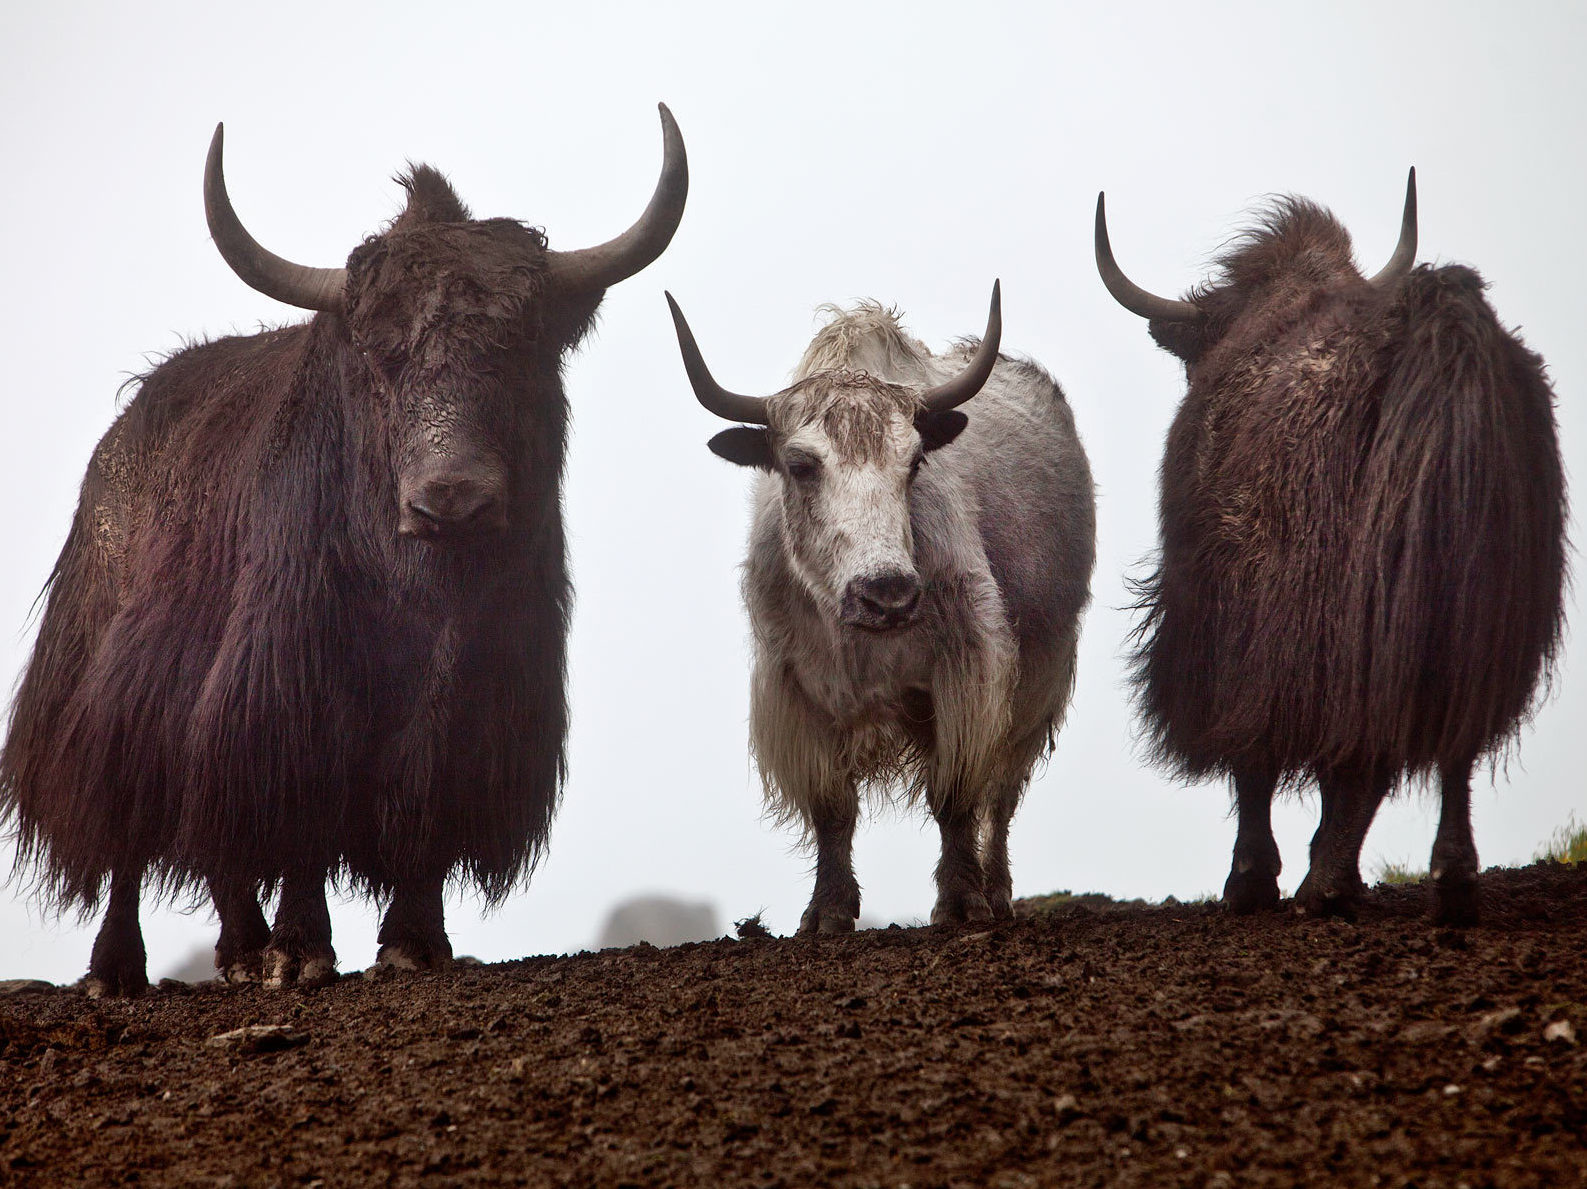 Yaks roam the hills in Mustang  District, in the Dhaulagiri Zone of Nepal. Every day during the annual blood-drinking festival, attendees wait and watch for the yaks. Only male yaks are bled.